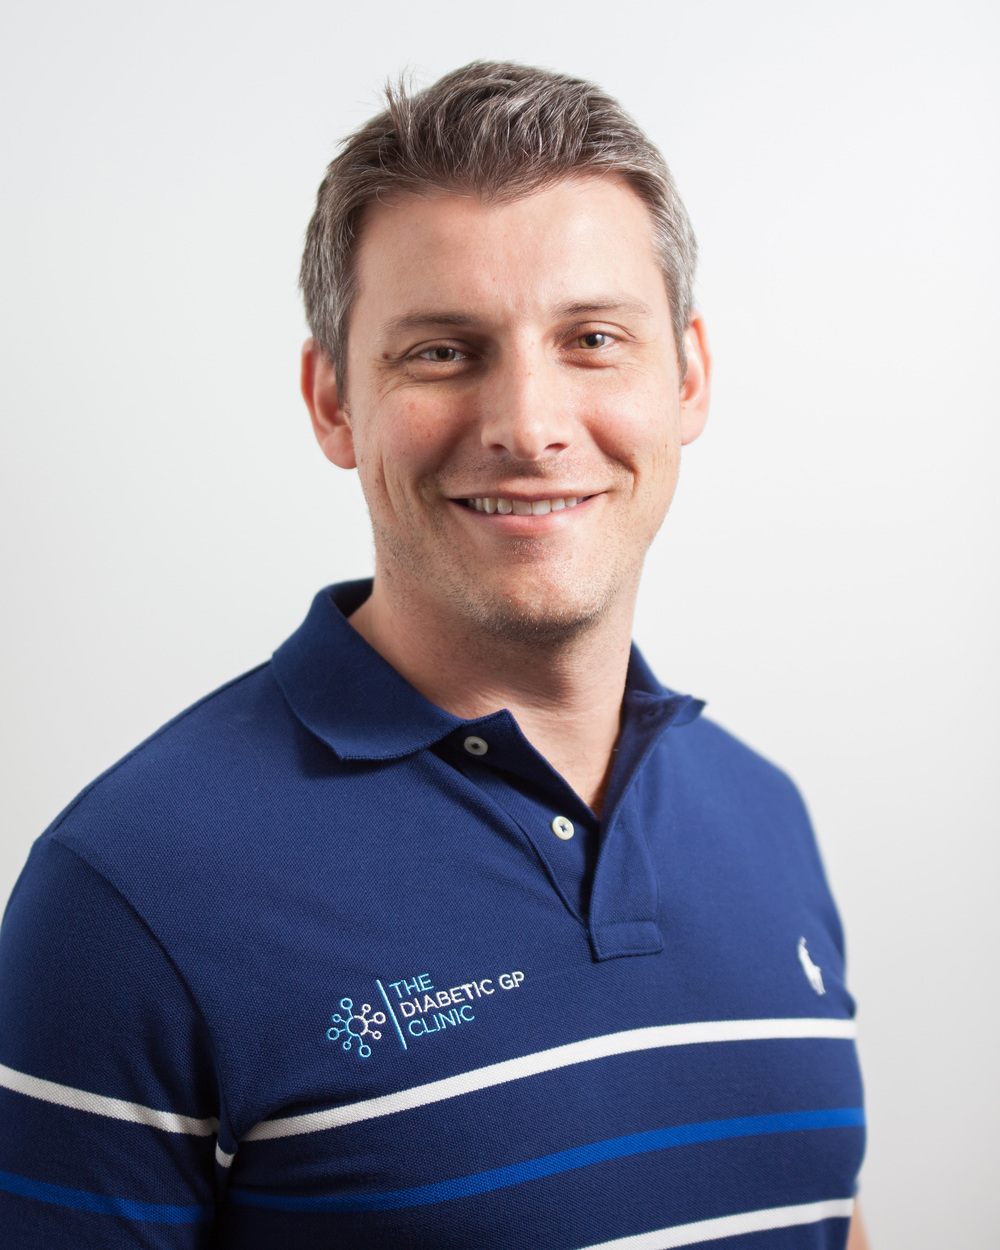 Mahn Cooke is an exercise physiologist based at The Diabetic GP   medical centre in Hyde Park, Townsville.